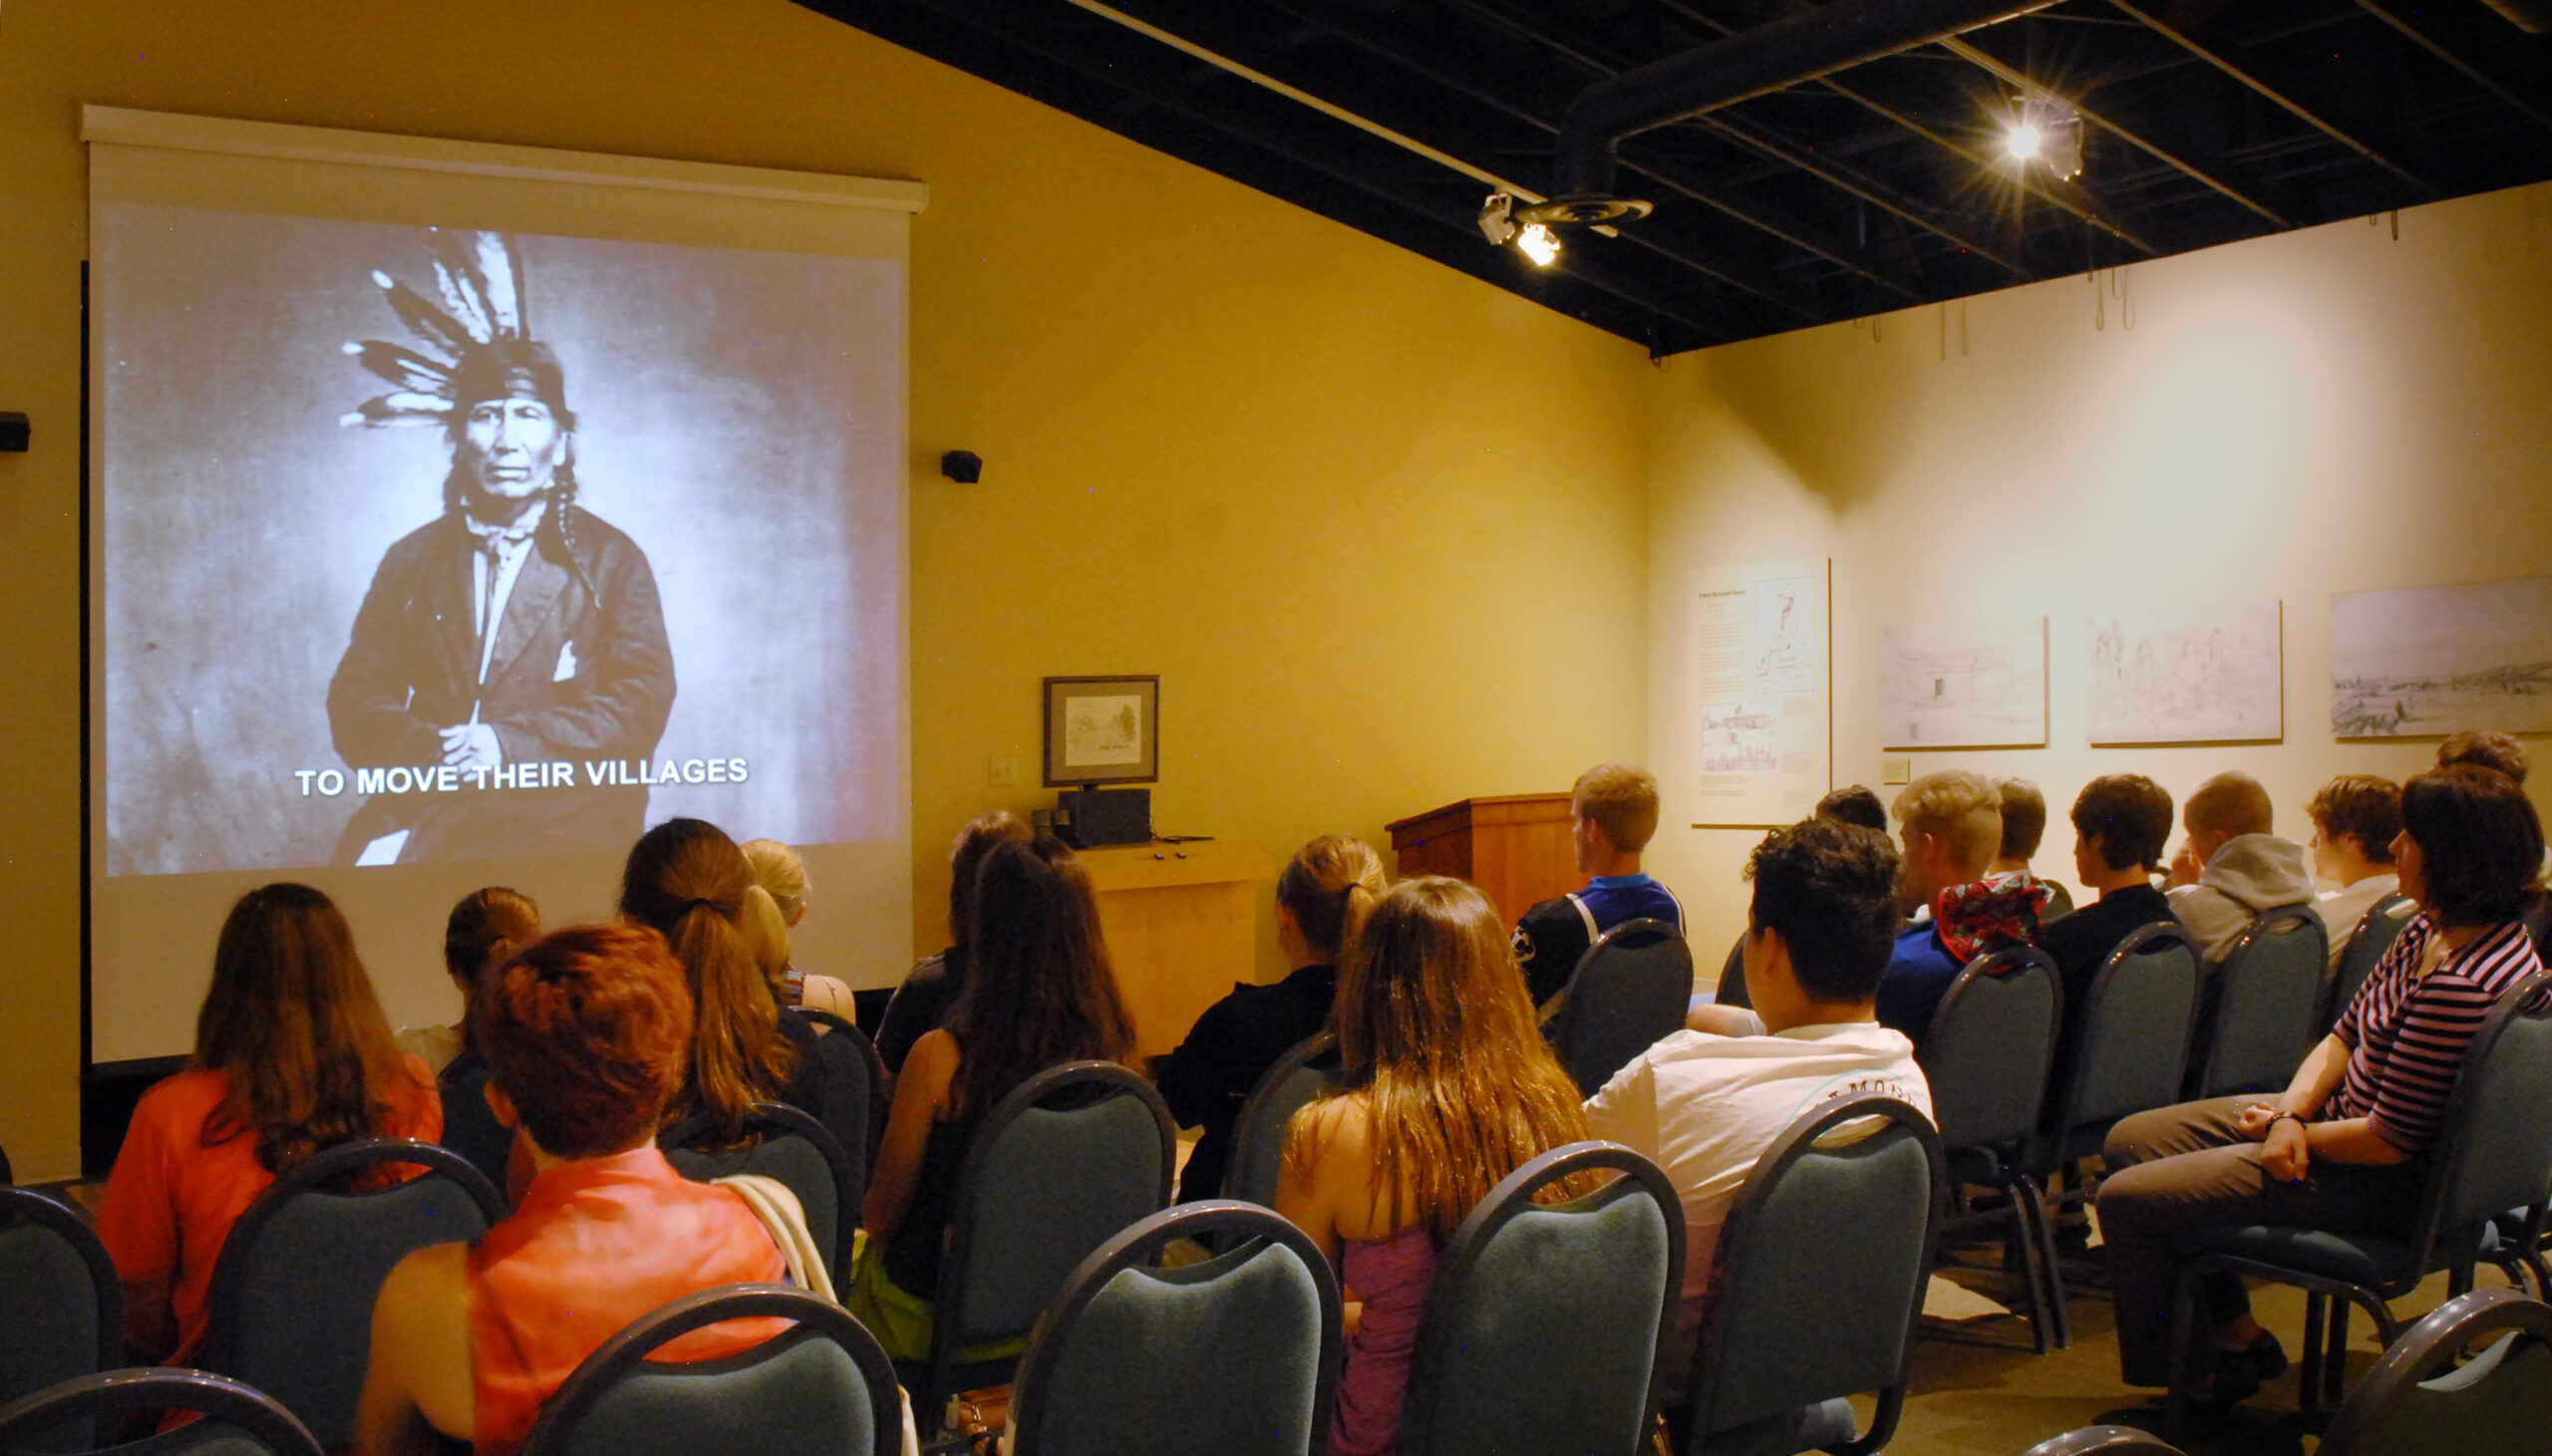 Students watching introductory film